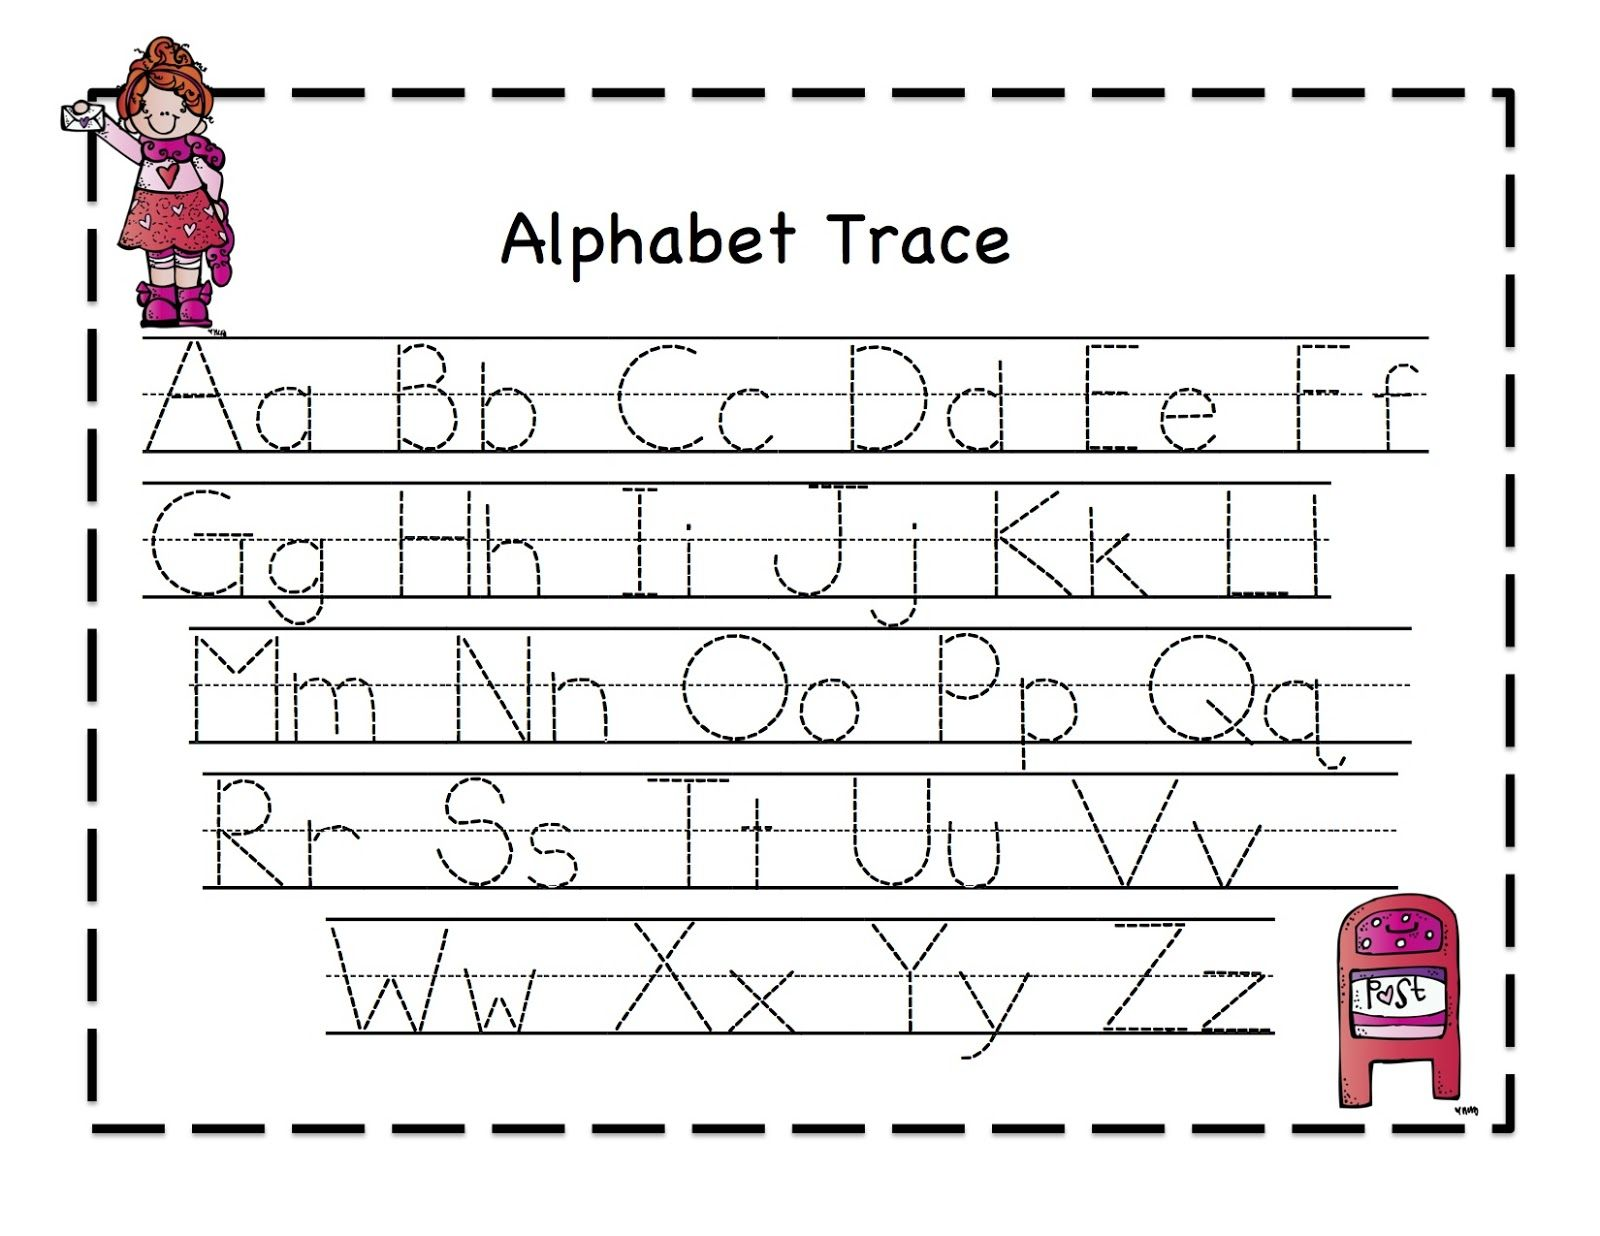 Worksheet Alphabet Tracing abc tracing sheets for preschool kids kiddo shelter alphabet shelter